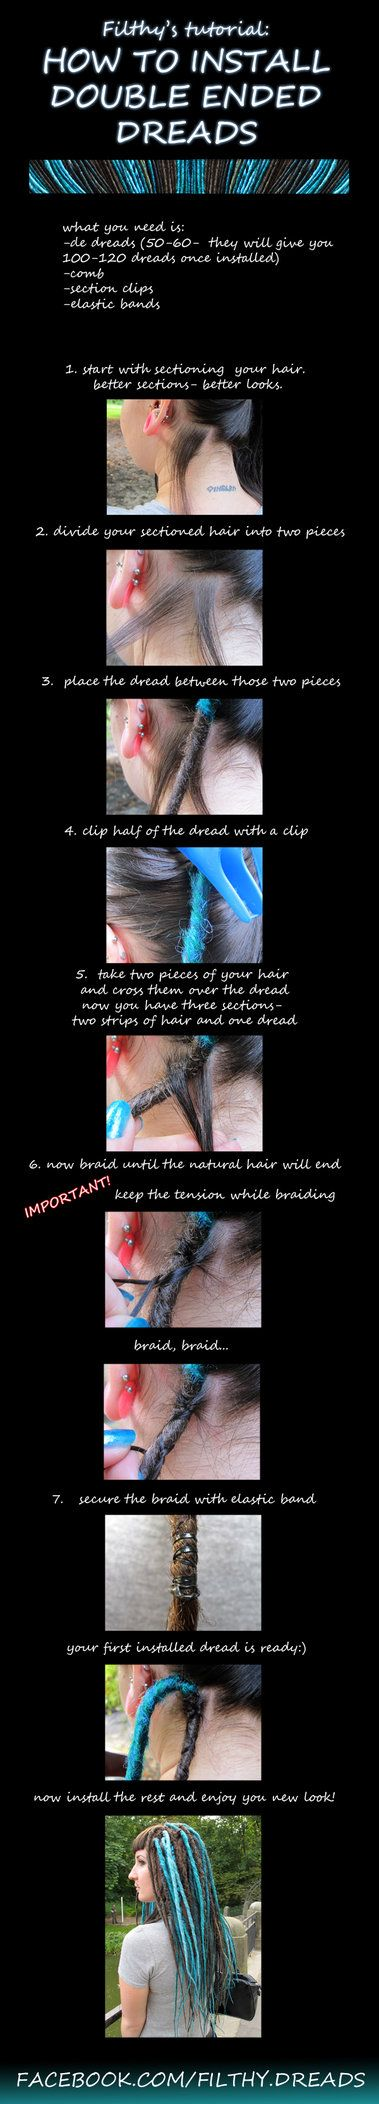 how to install de dreads by FilthyDreads